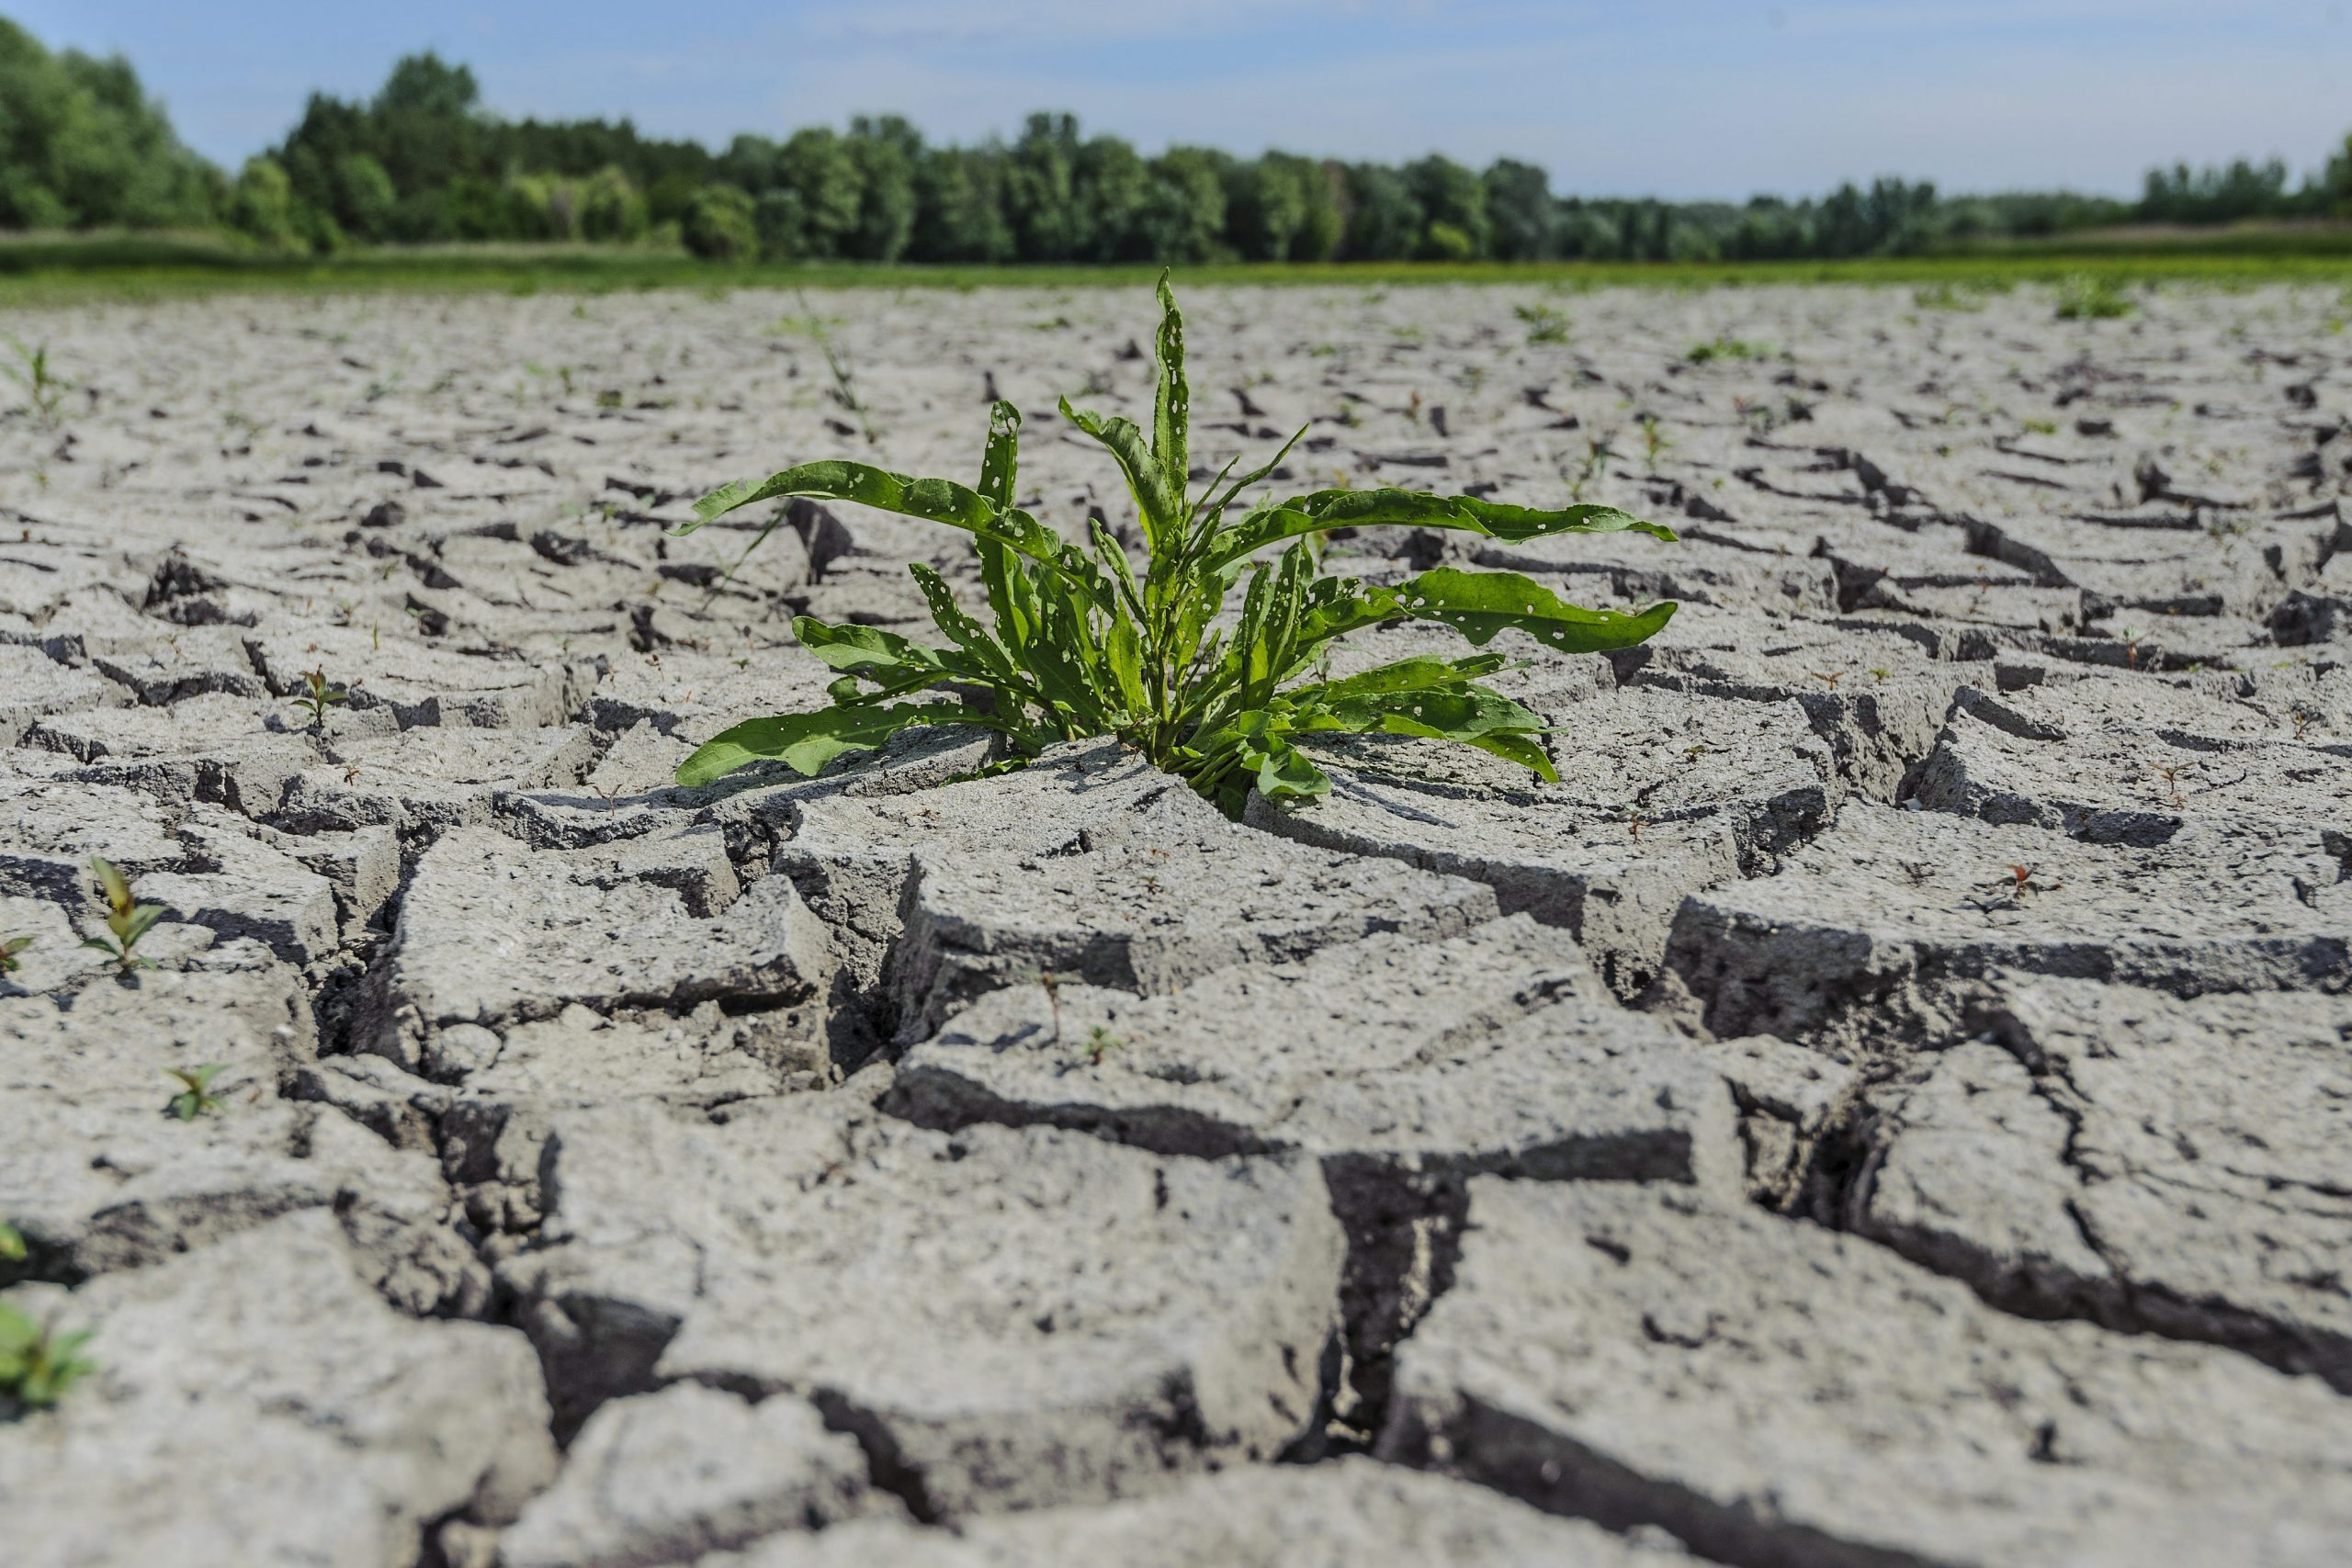 Hungary Passes its Earth Overshoot Day